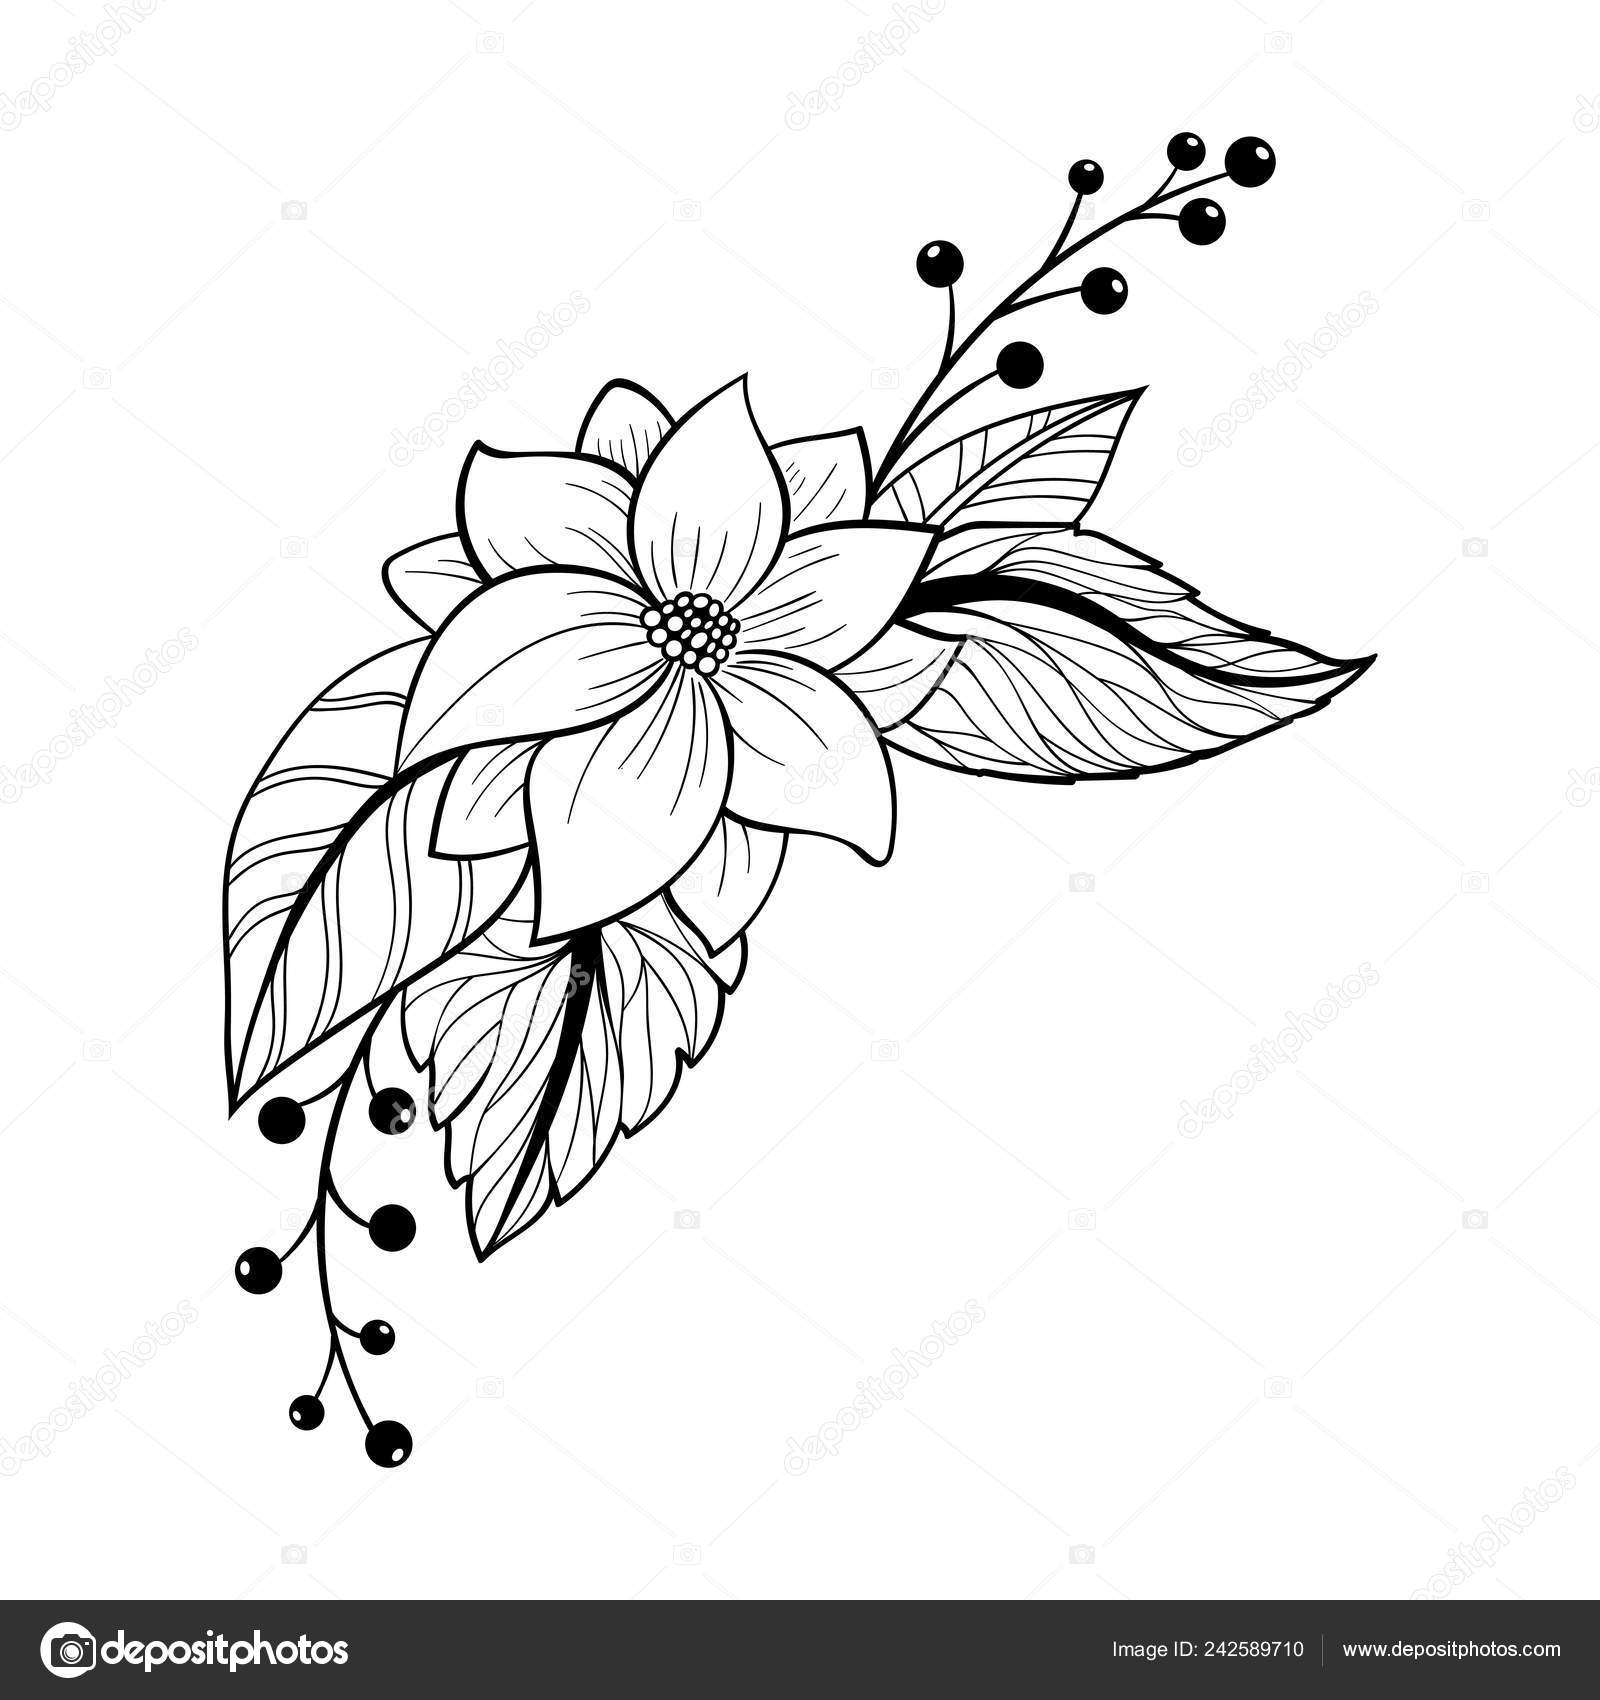 Hand Drawn Floral Doodle Background Decorative Flower Your Design Can Stock Vector C Collibri 242589710